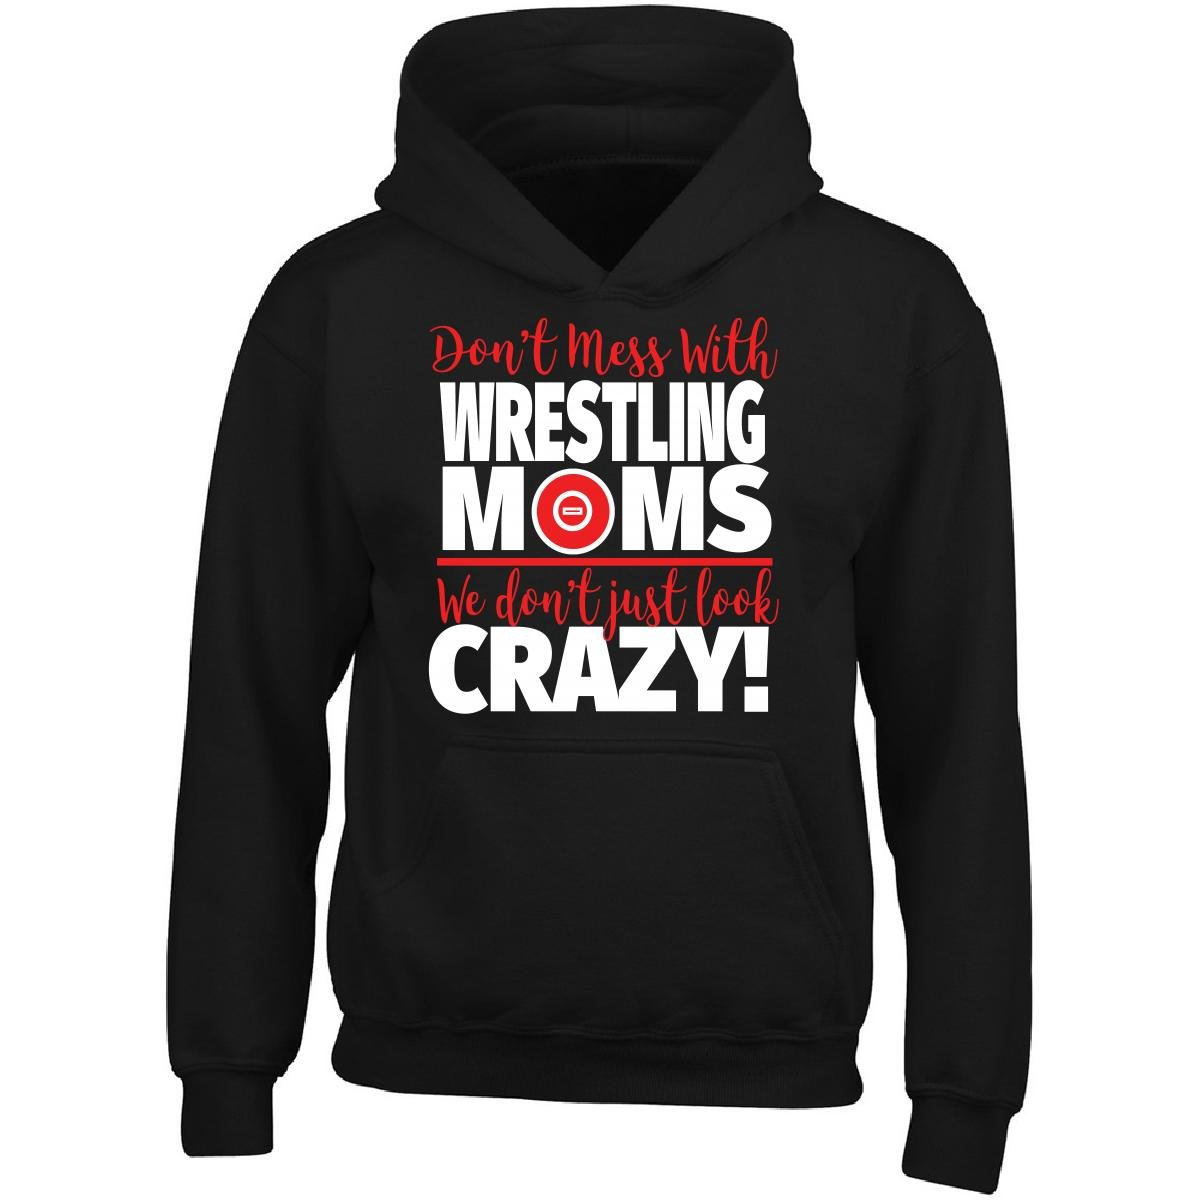 Crazy Wrestling Family - Don't Mess With Wrestling Moms - Adult Hoodie 2XL Black